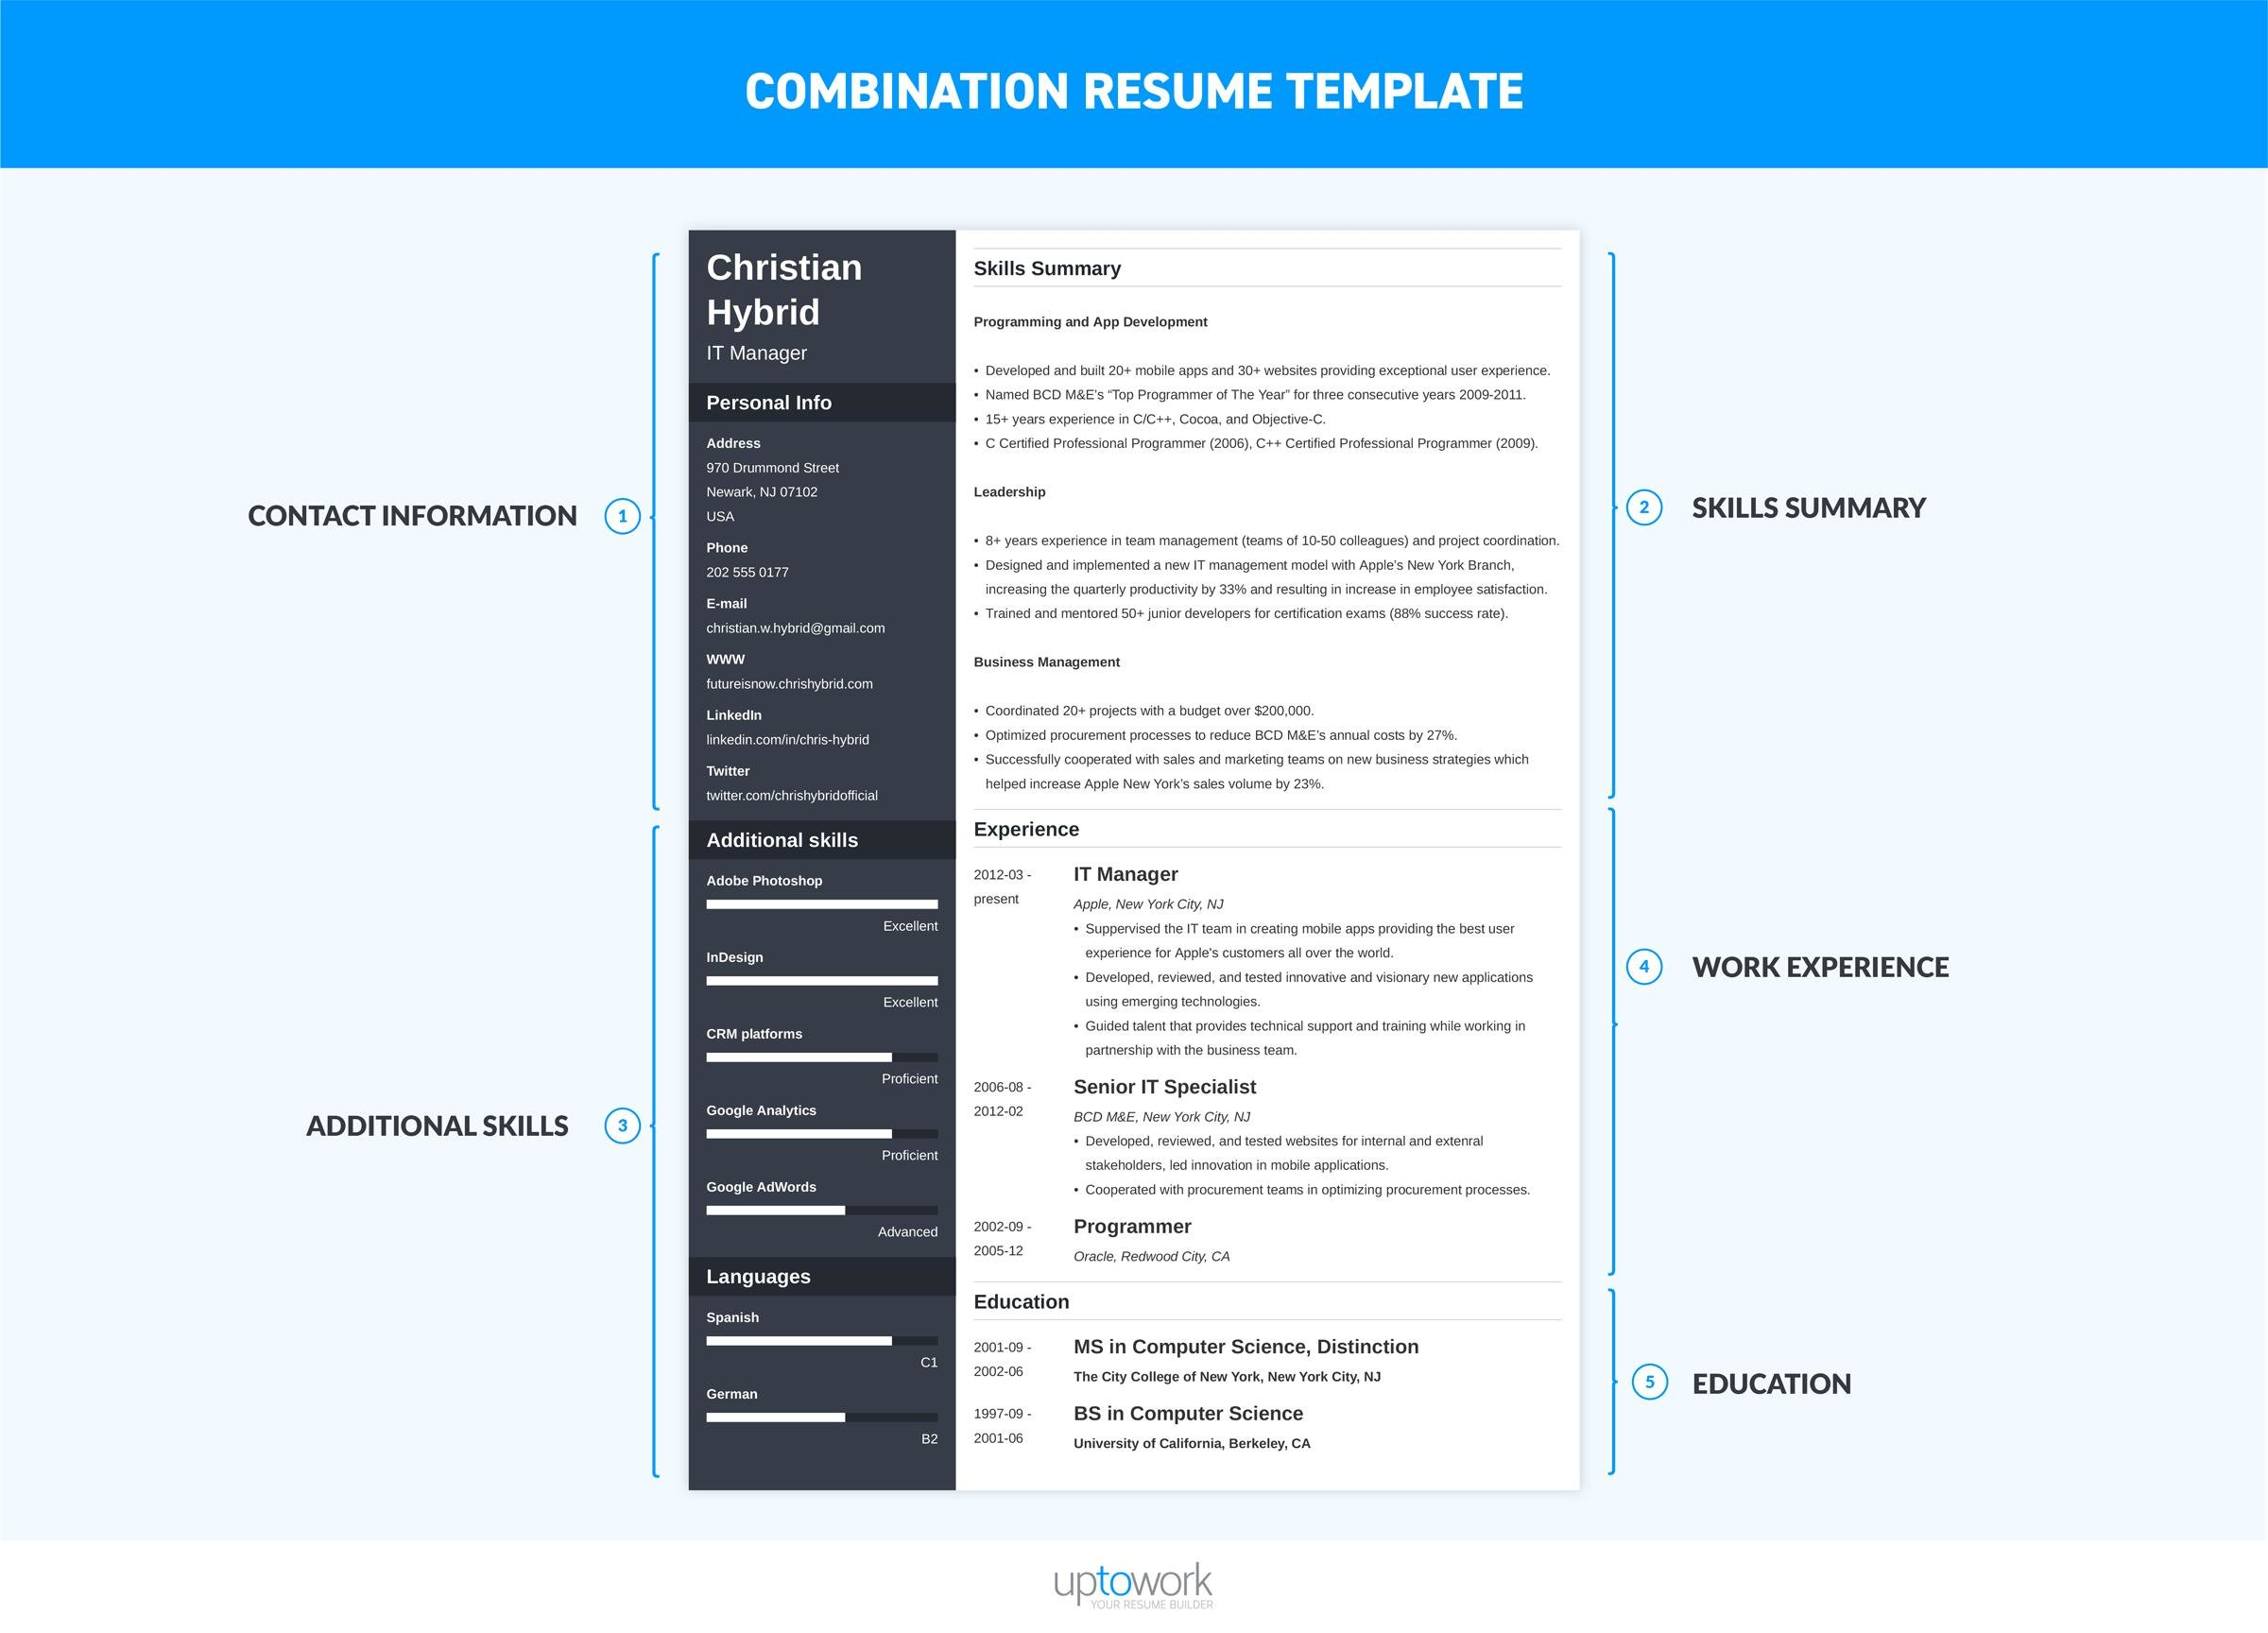 How To Write An Effective Combination Resume And What Sections To Include